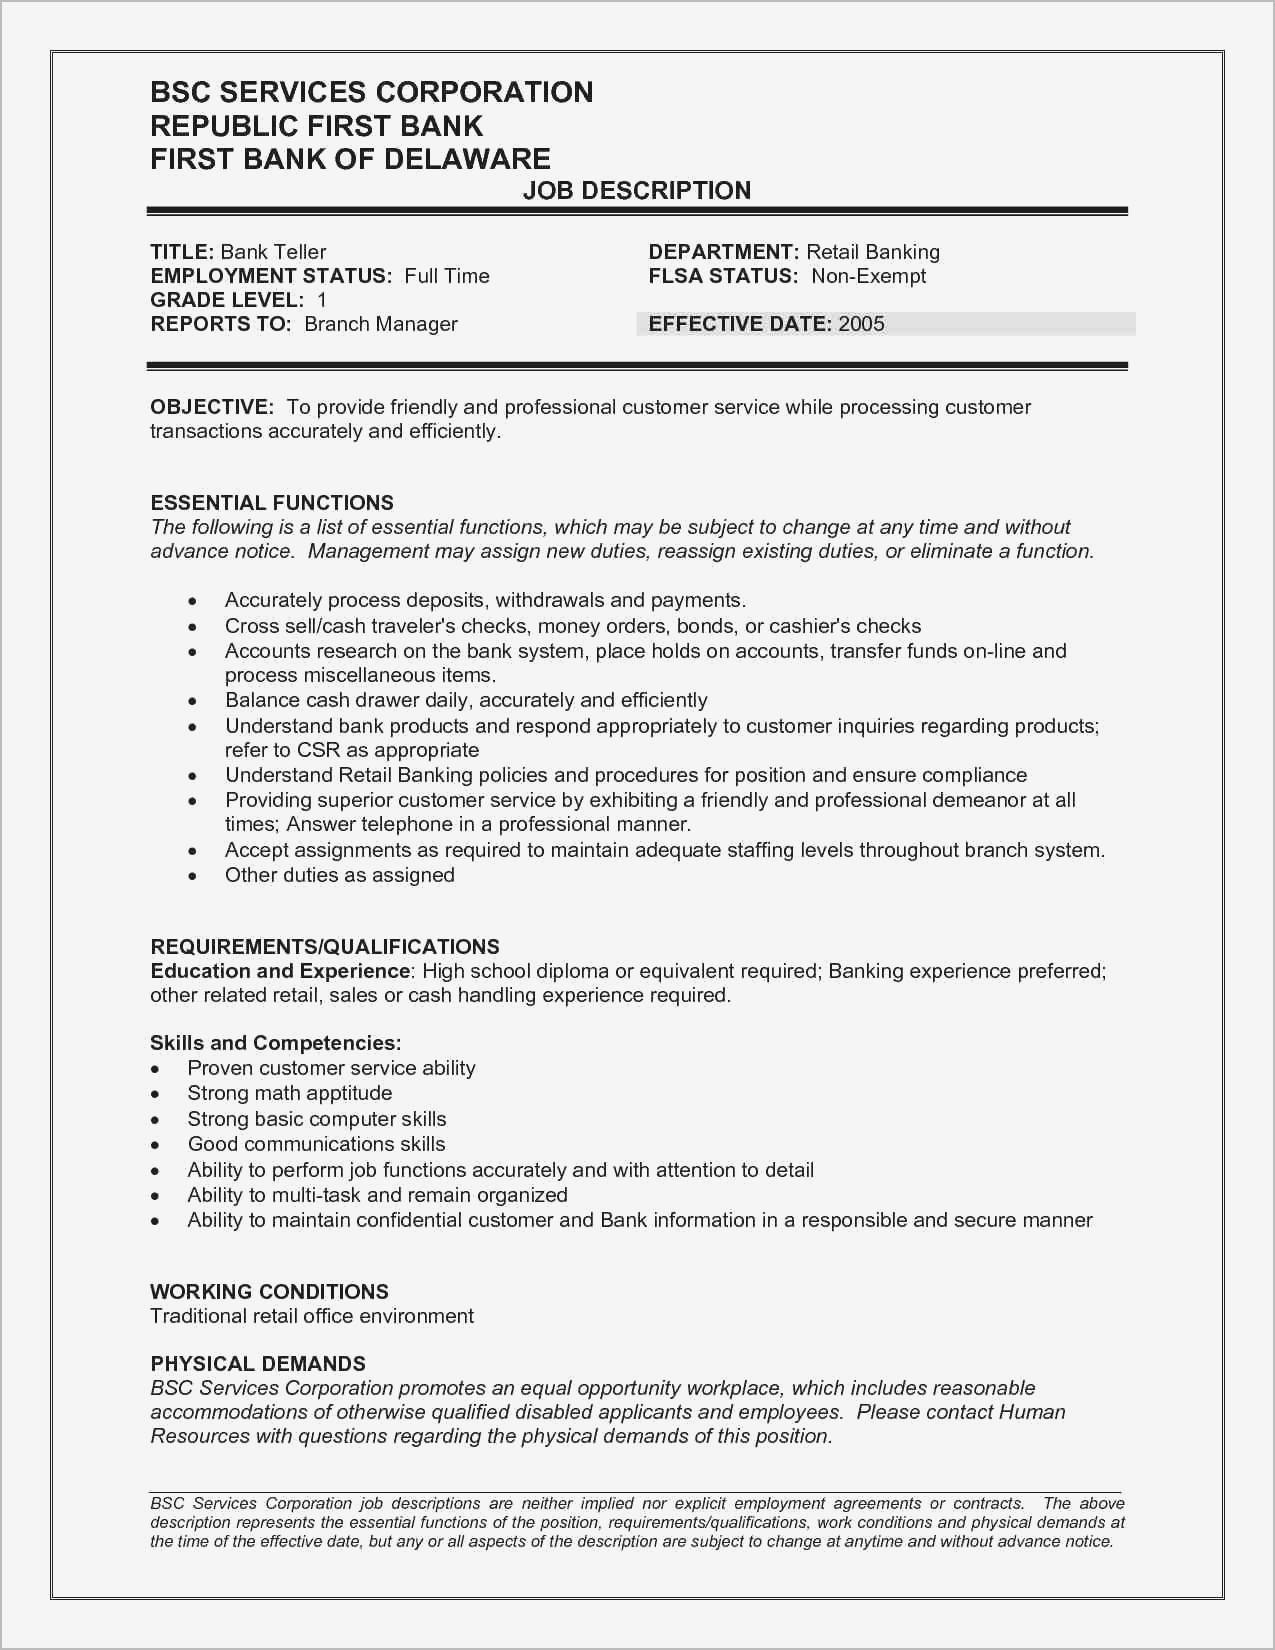 12 Core Competencies Resume Example Collection | Resume Database ...